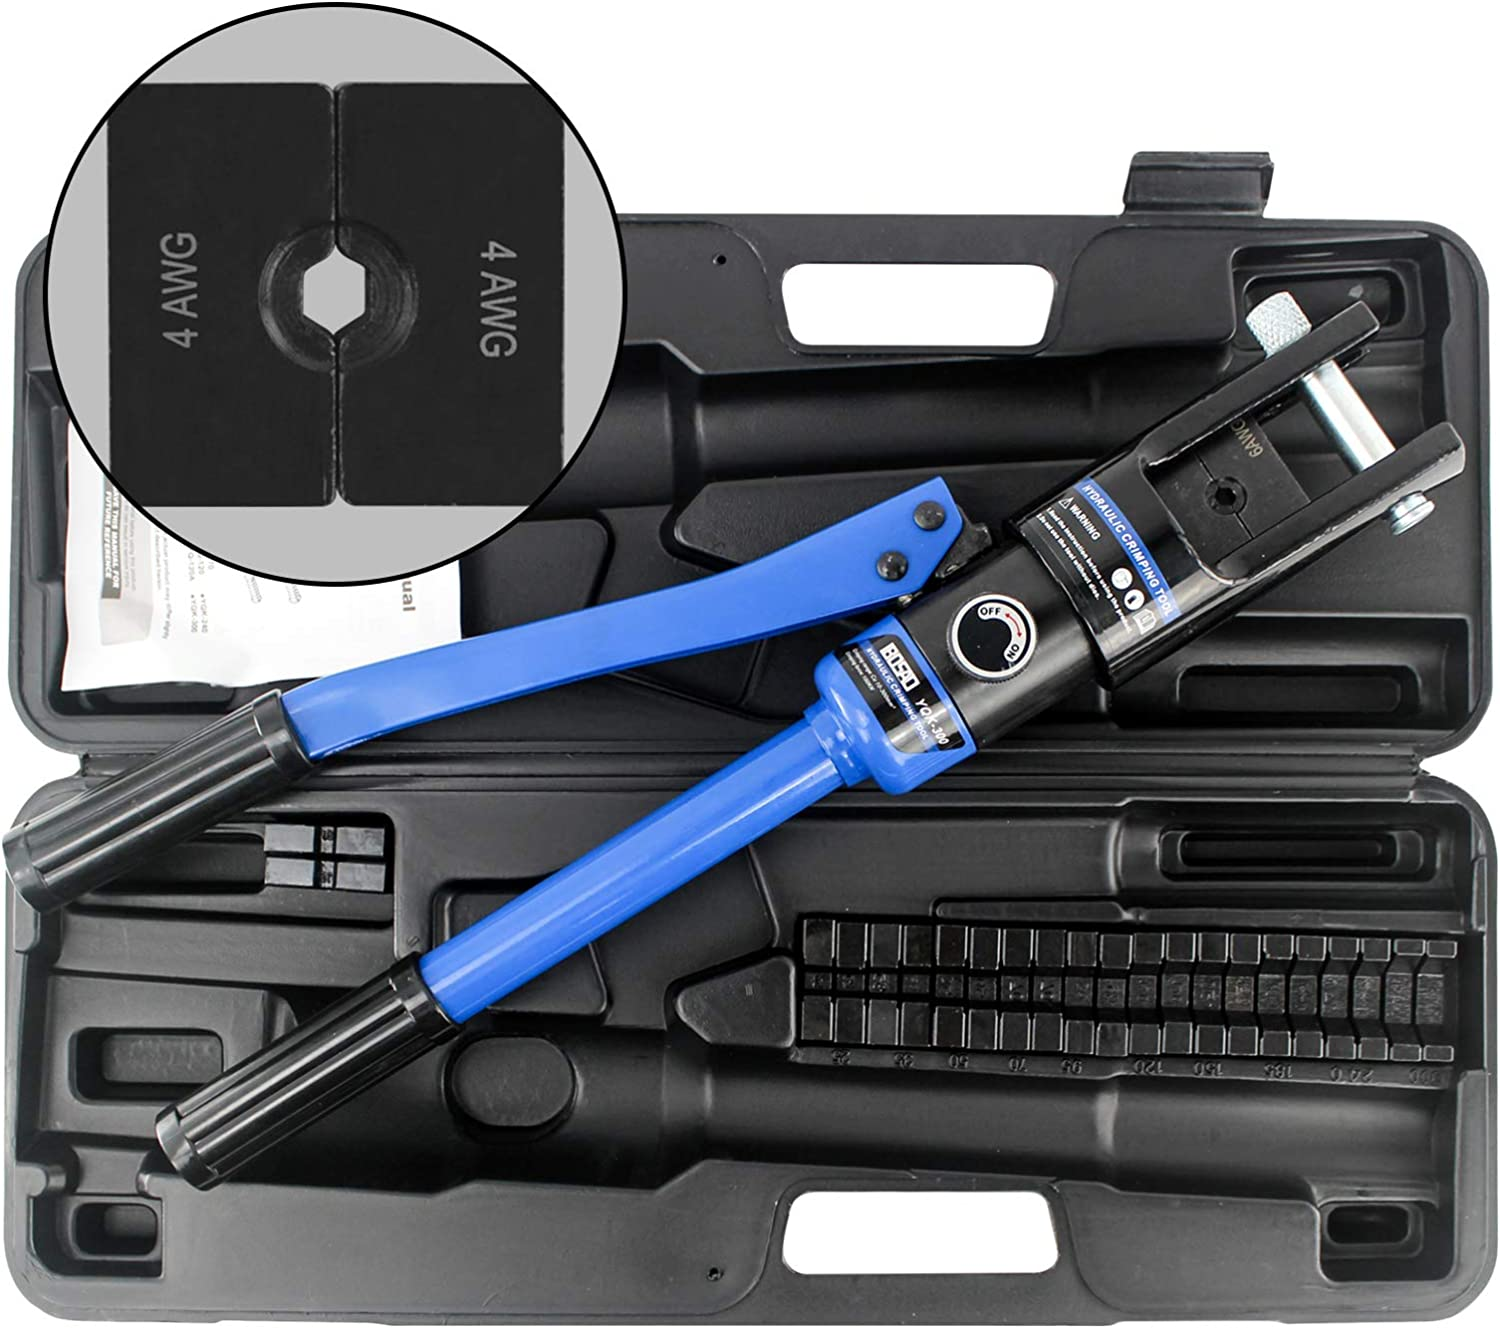 IBOSAD Hydraulic Cable Lug Crimper Crimping Tool 6 AWG to 600 MCM Electrical Battery Terminal Cable Wire Tool Kit Wire,marked with AWG